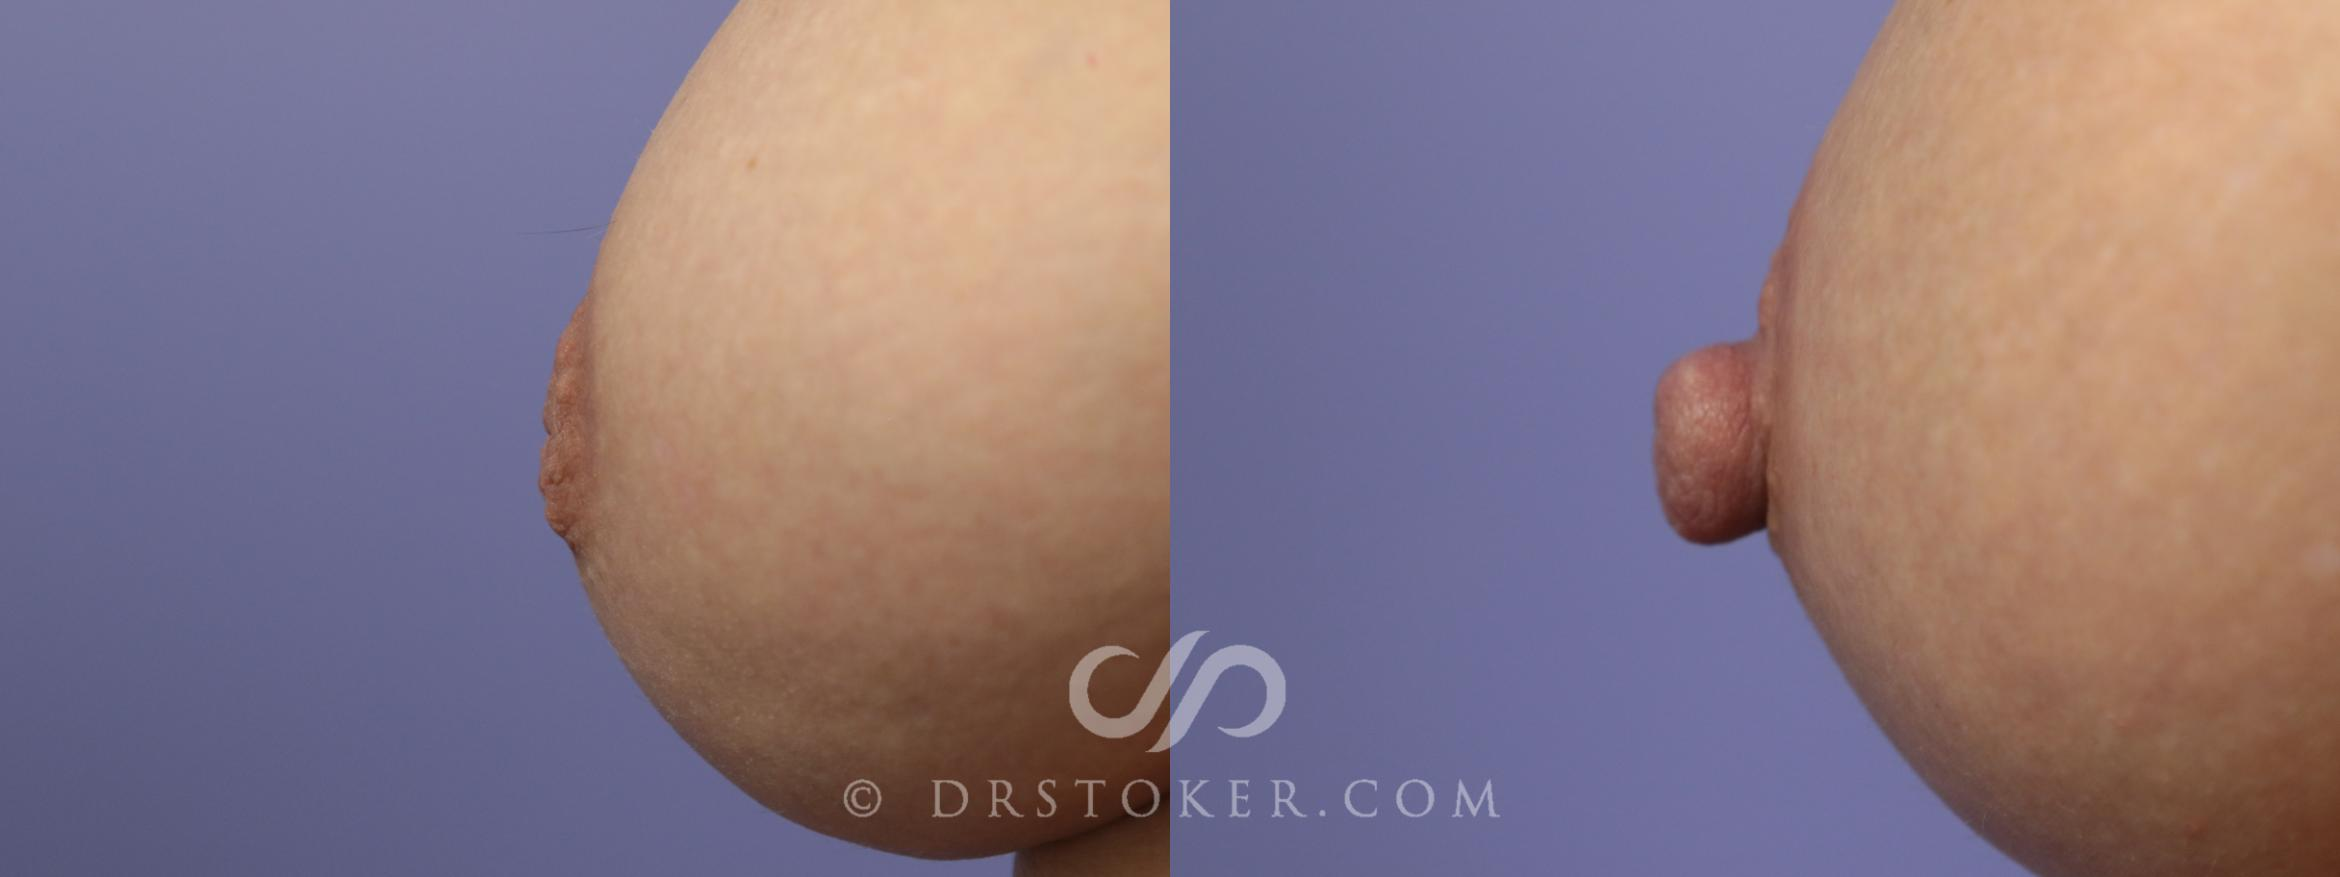 Nipple - Inversion Correction Case 757 Before & After View #1 | Marina del Rey, CA | Dr. David Stoker